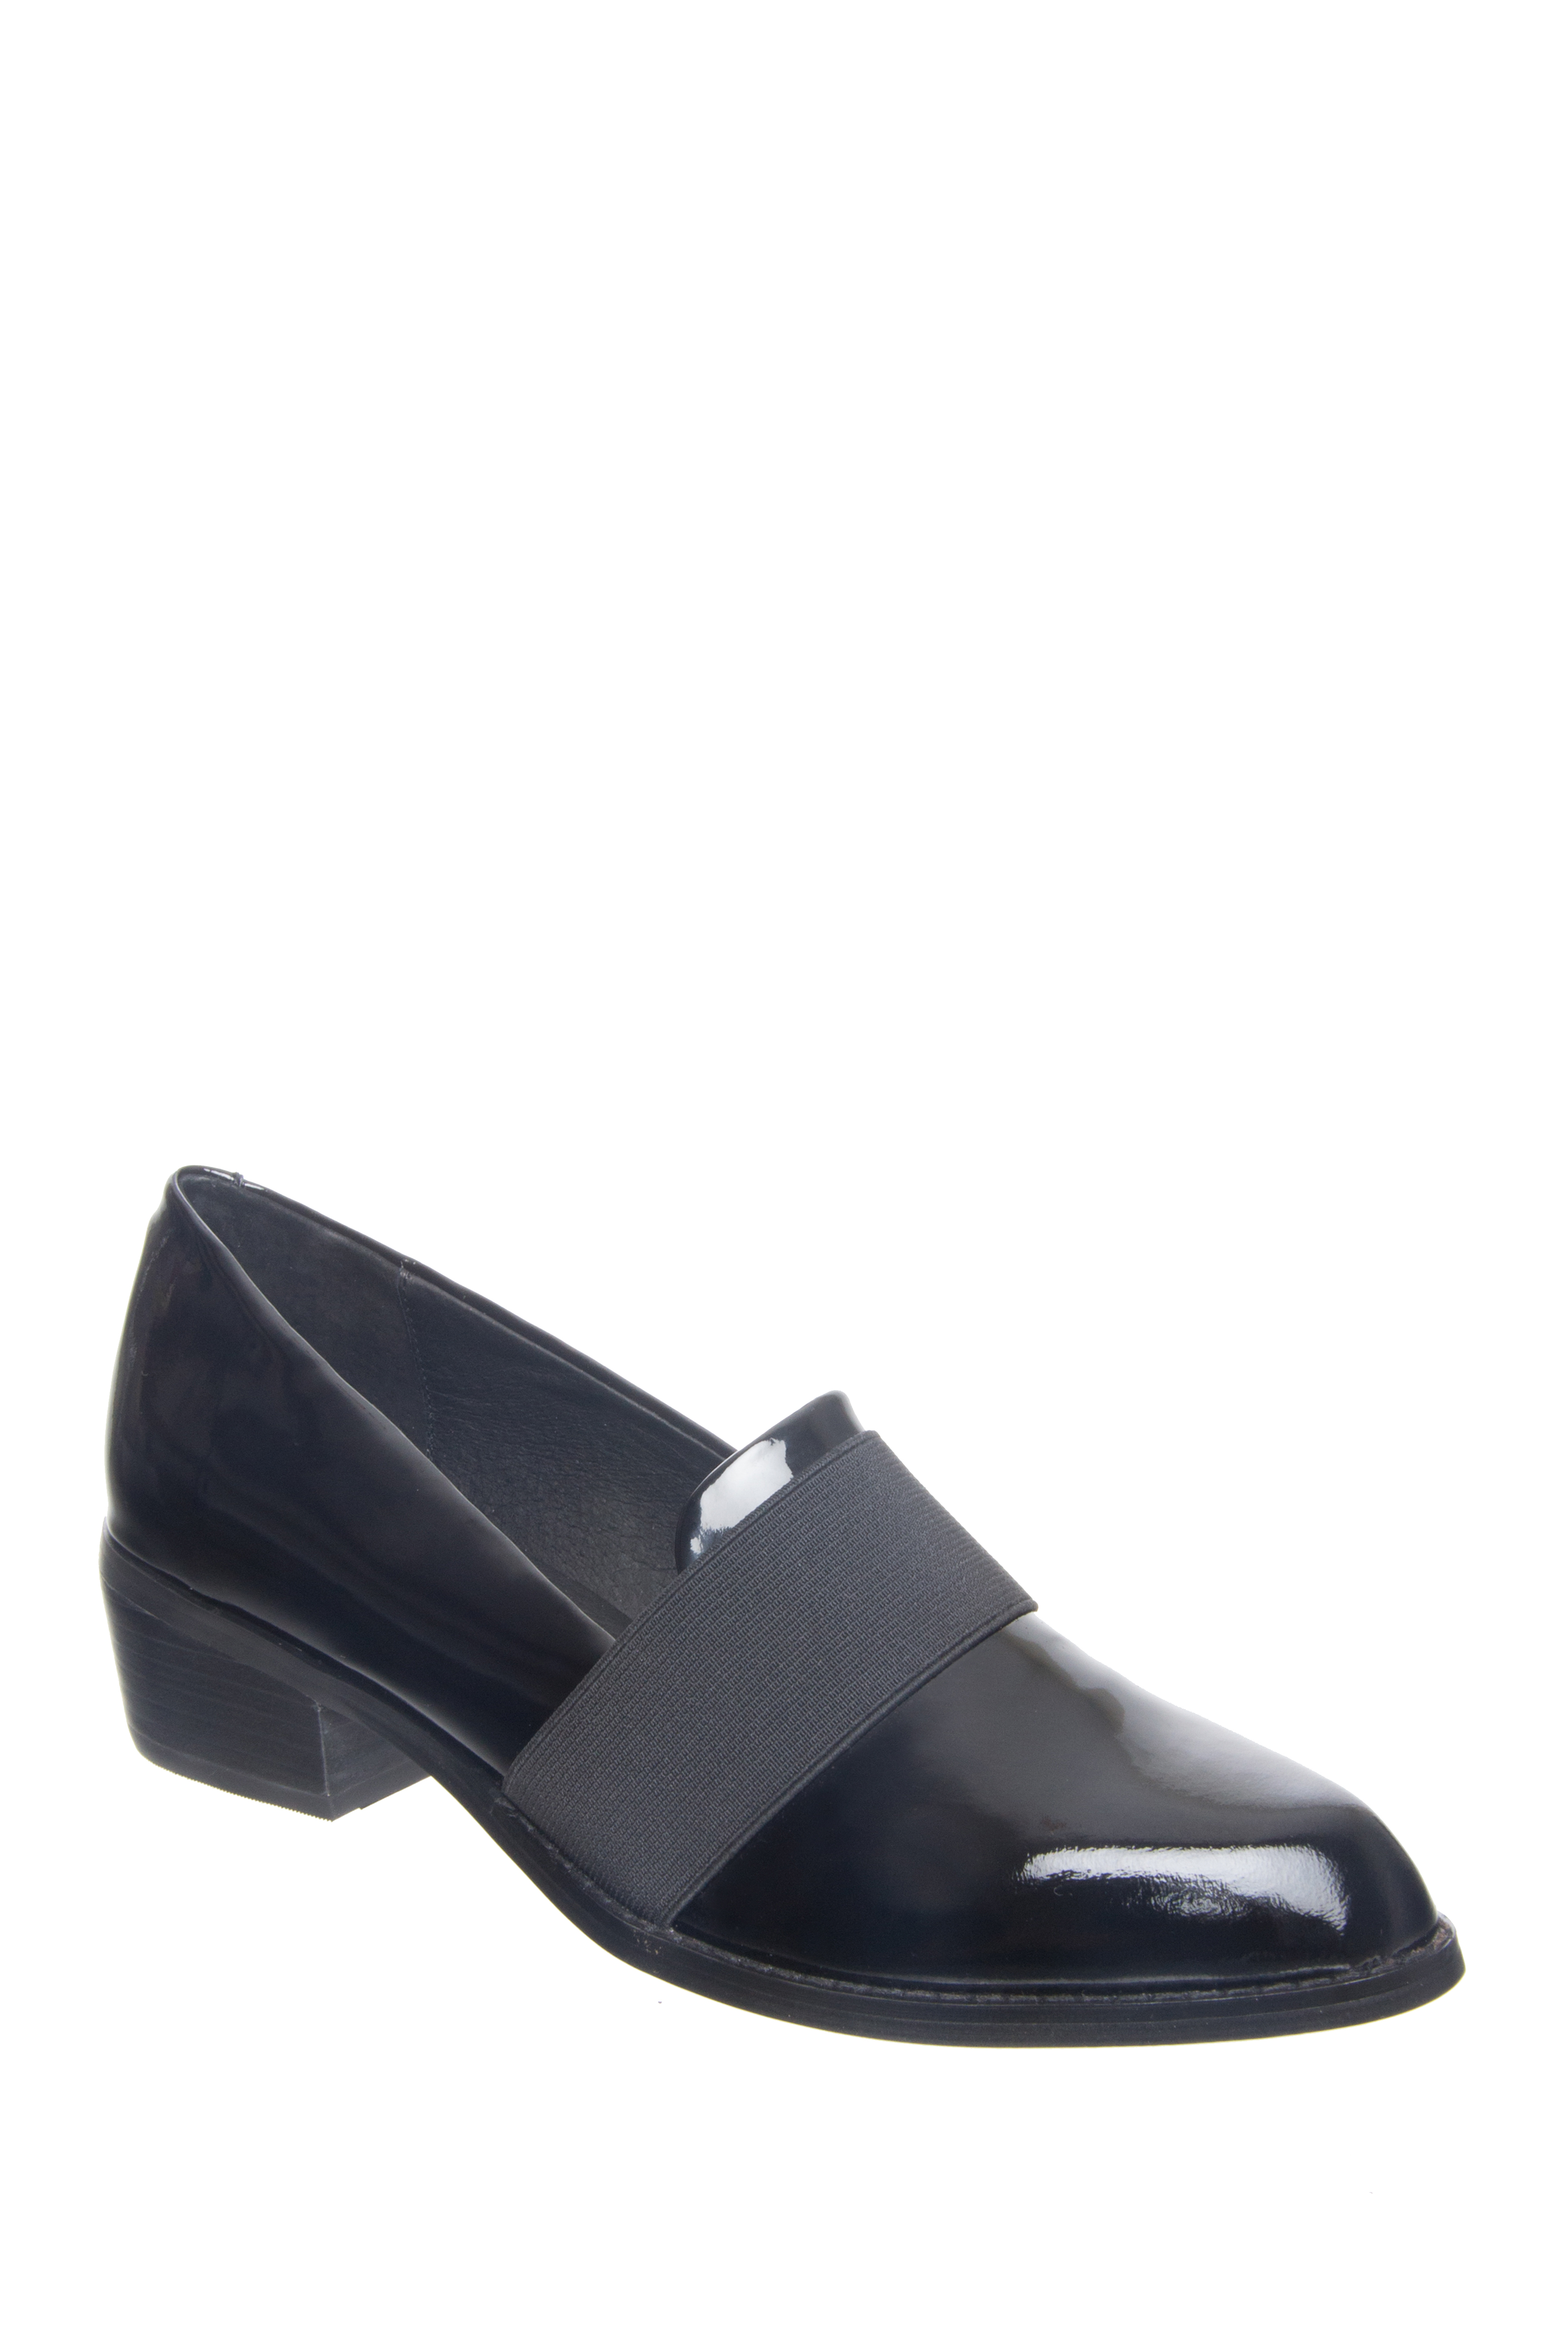 Sol Sana Dill Pointed -Toe Loafers - Black